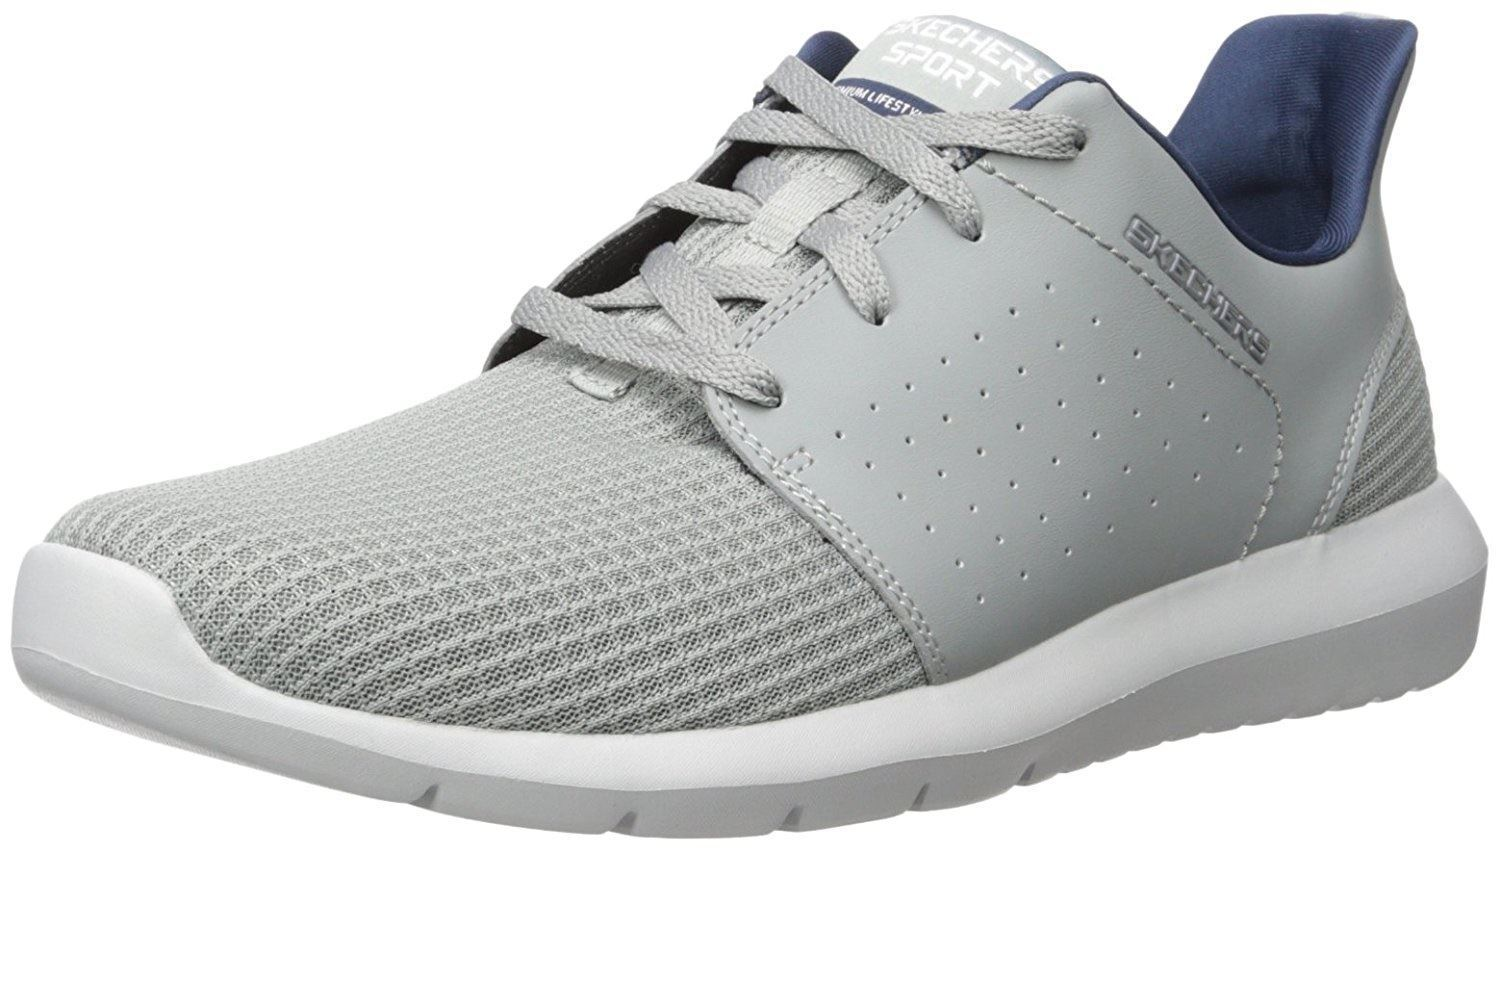 SKECHERS Men's Foreflex lace up athletic walking and training sneaker in Grey